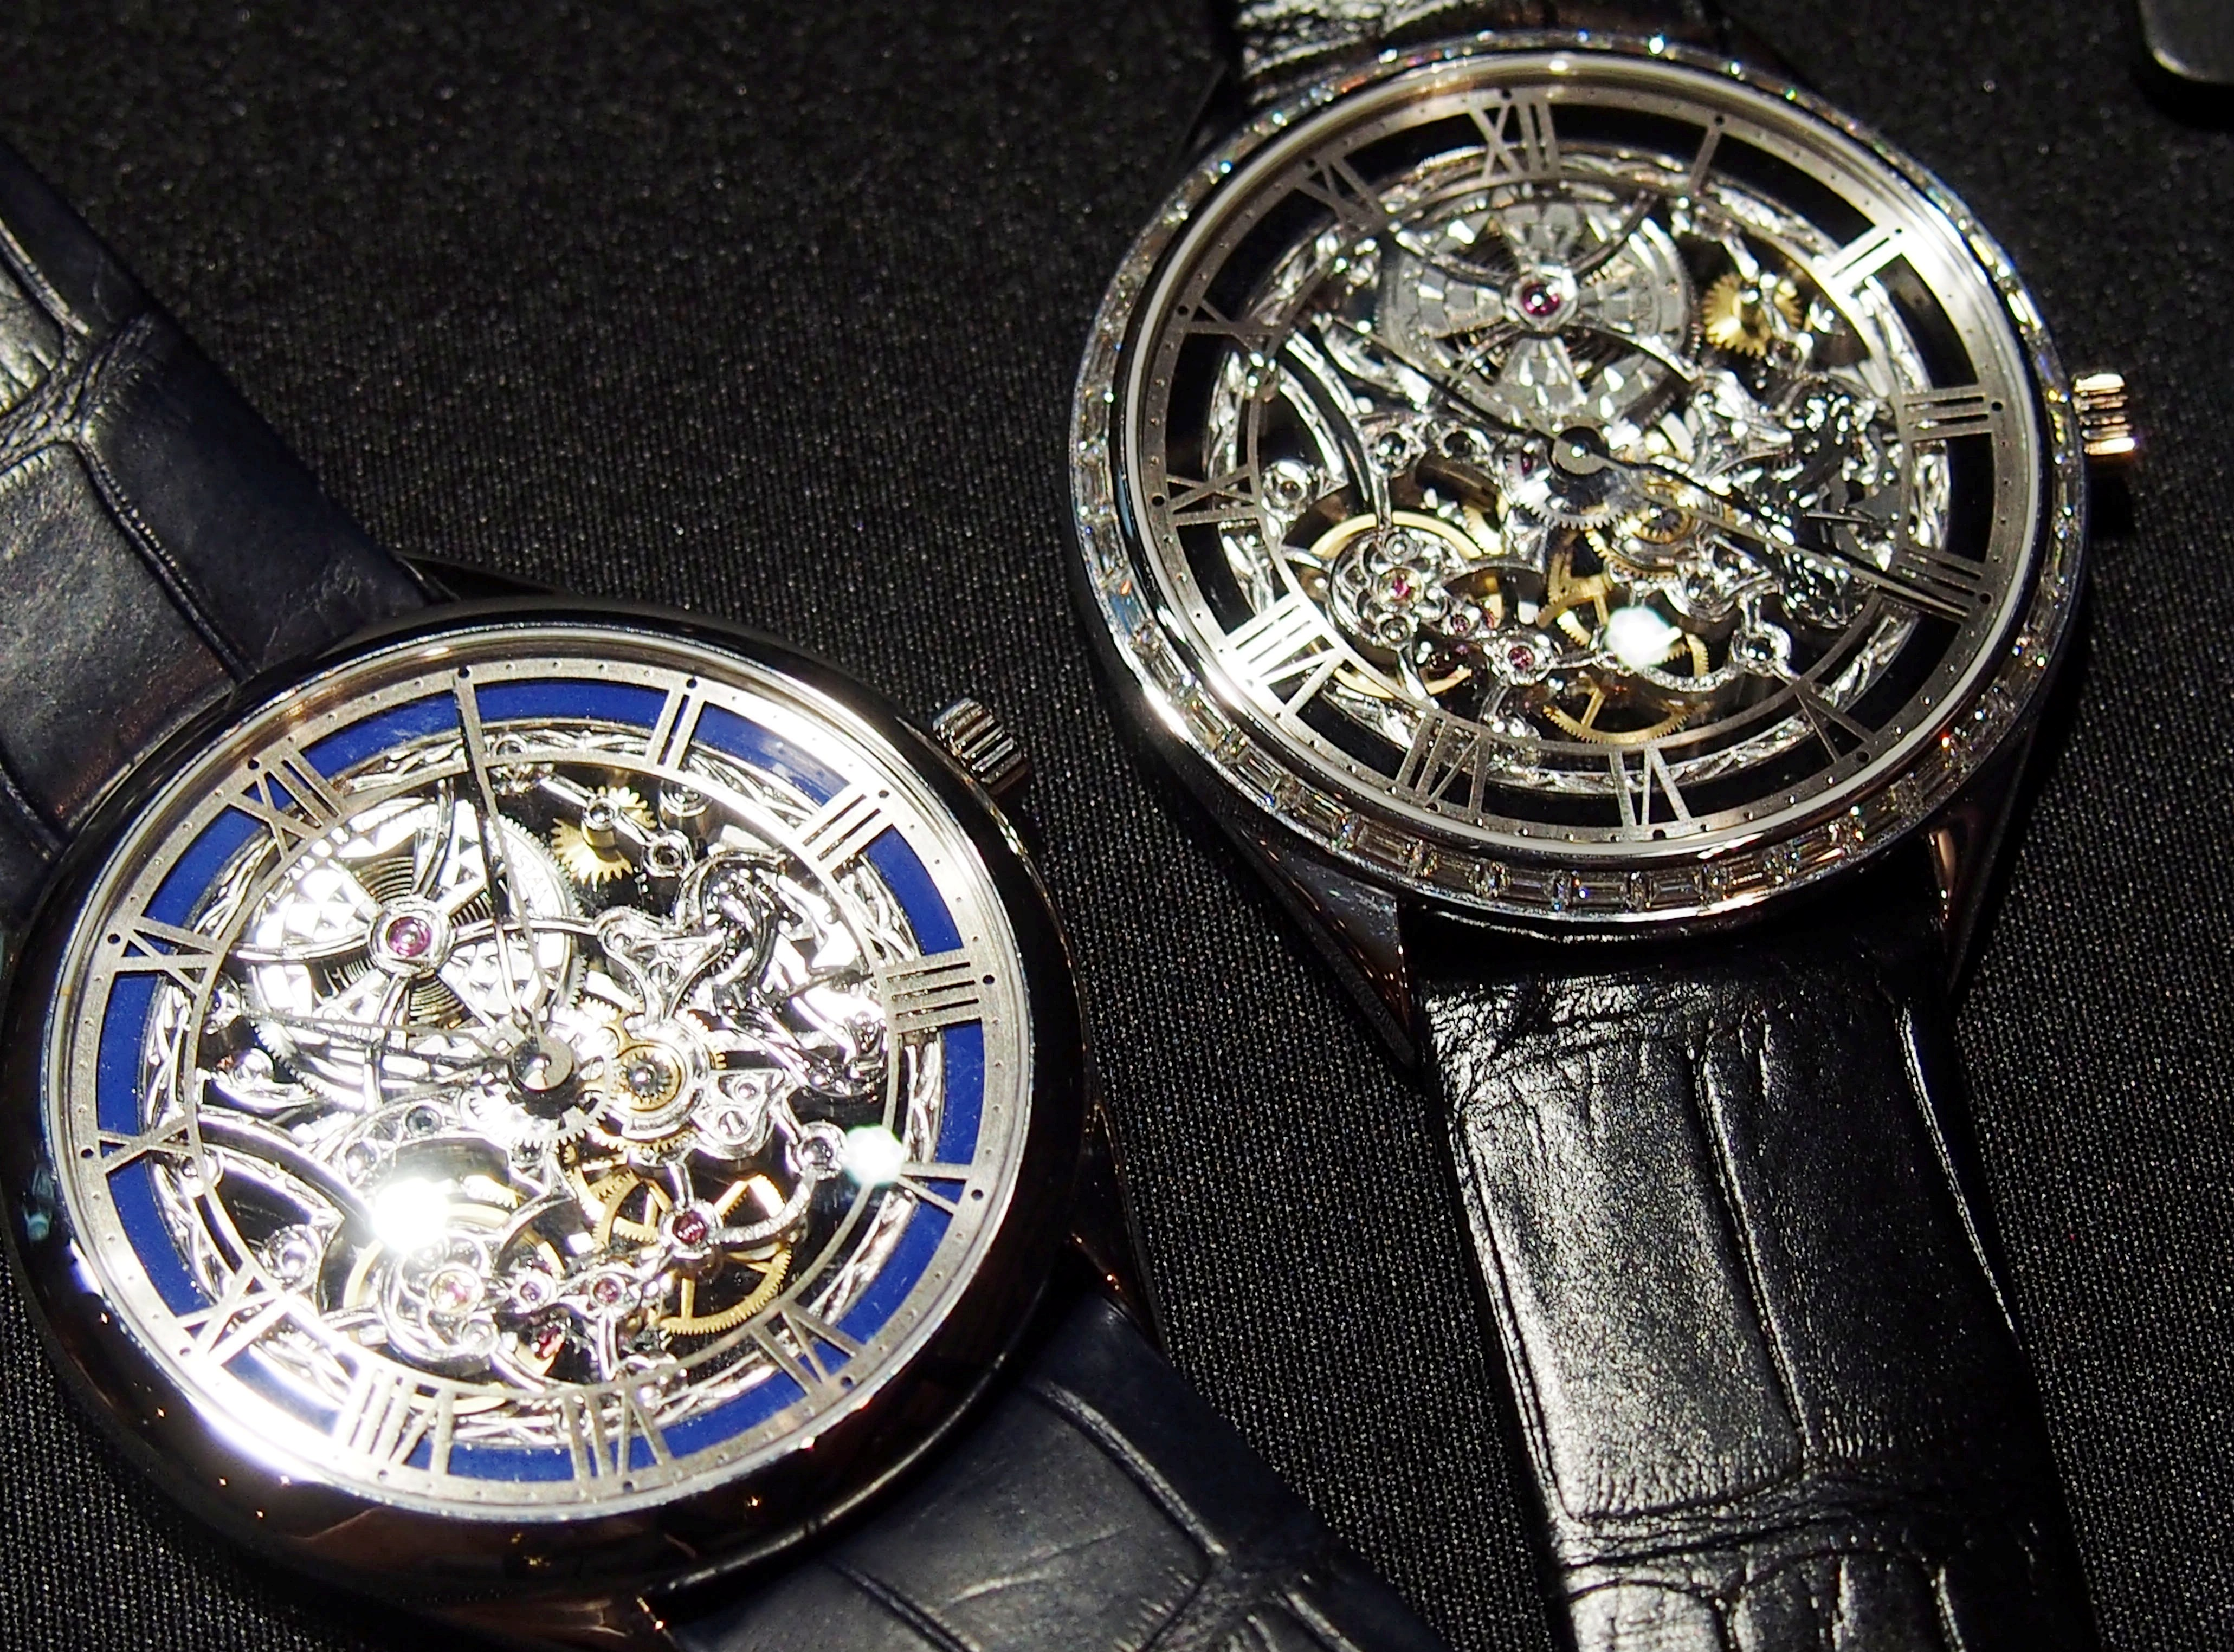 The new skeletonized watches feature blue, gray or black Grand Feu enamel inner rings.